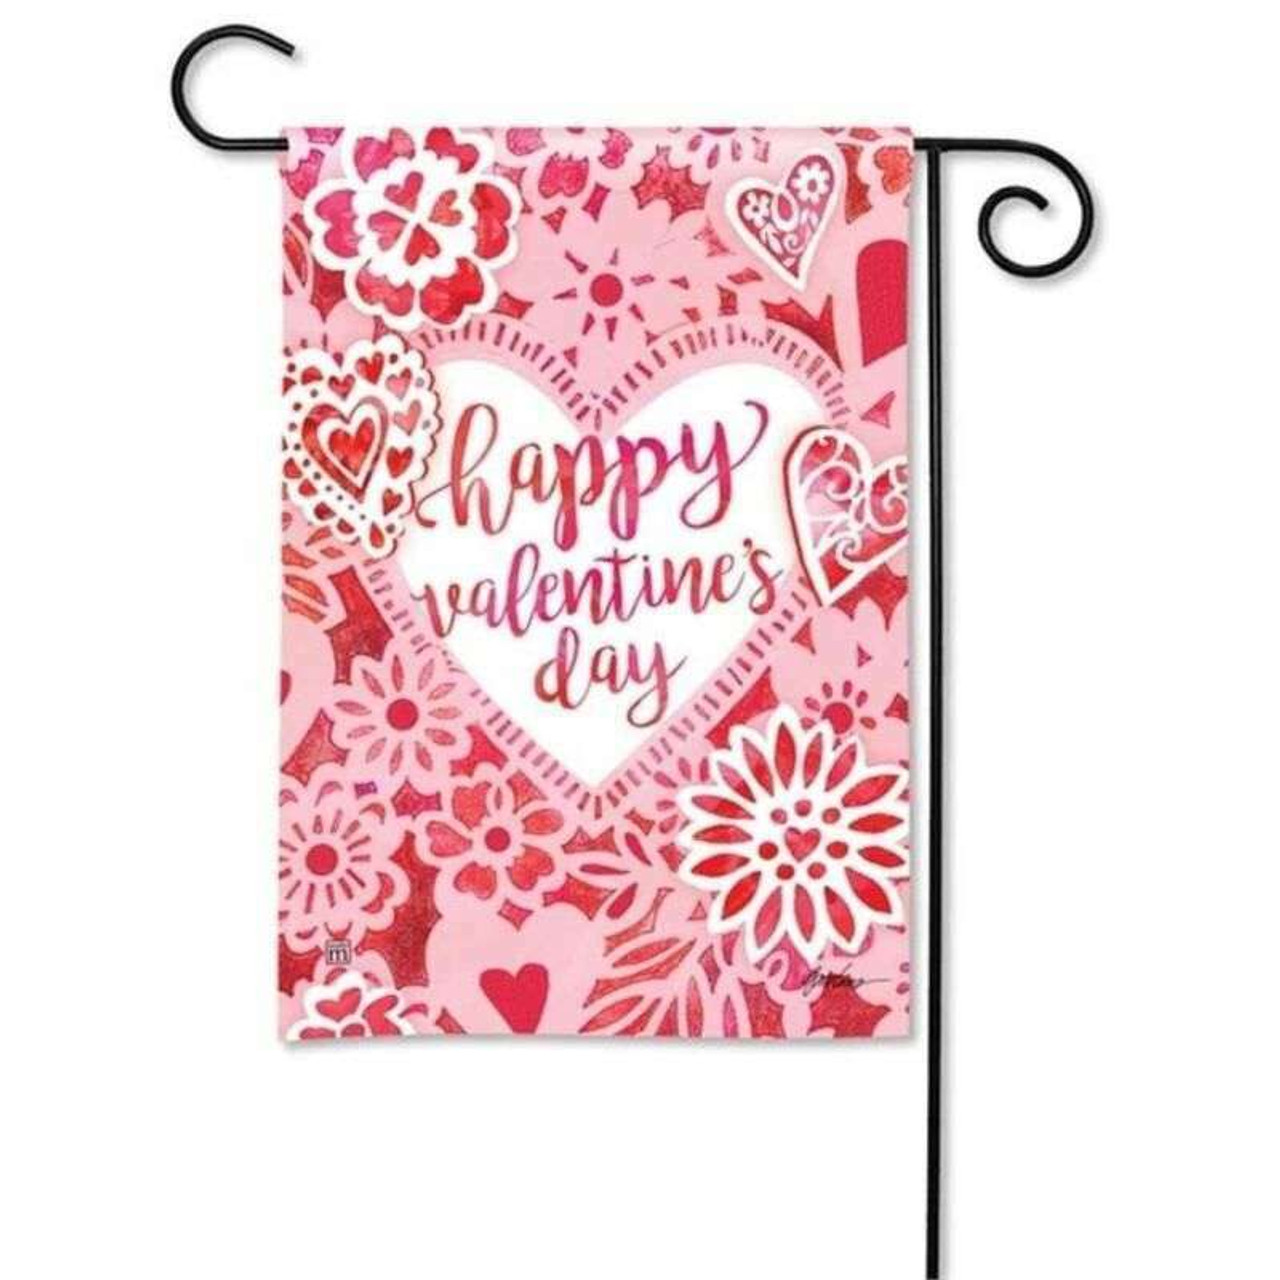 A Valentine's themed garden banner with hues of carnation pink, rose red, and bright white, hangs on a black garden flag pole. In the center of the garden flag is a white heart framed in light pink with cherry red script  spelling 'happy valentine's day.'  The central heart is surrounded and framed with a collage of doily like hearts and flowers.